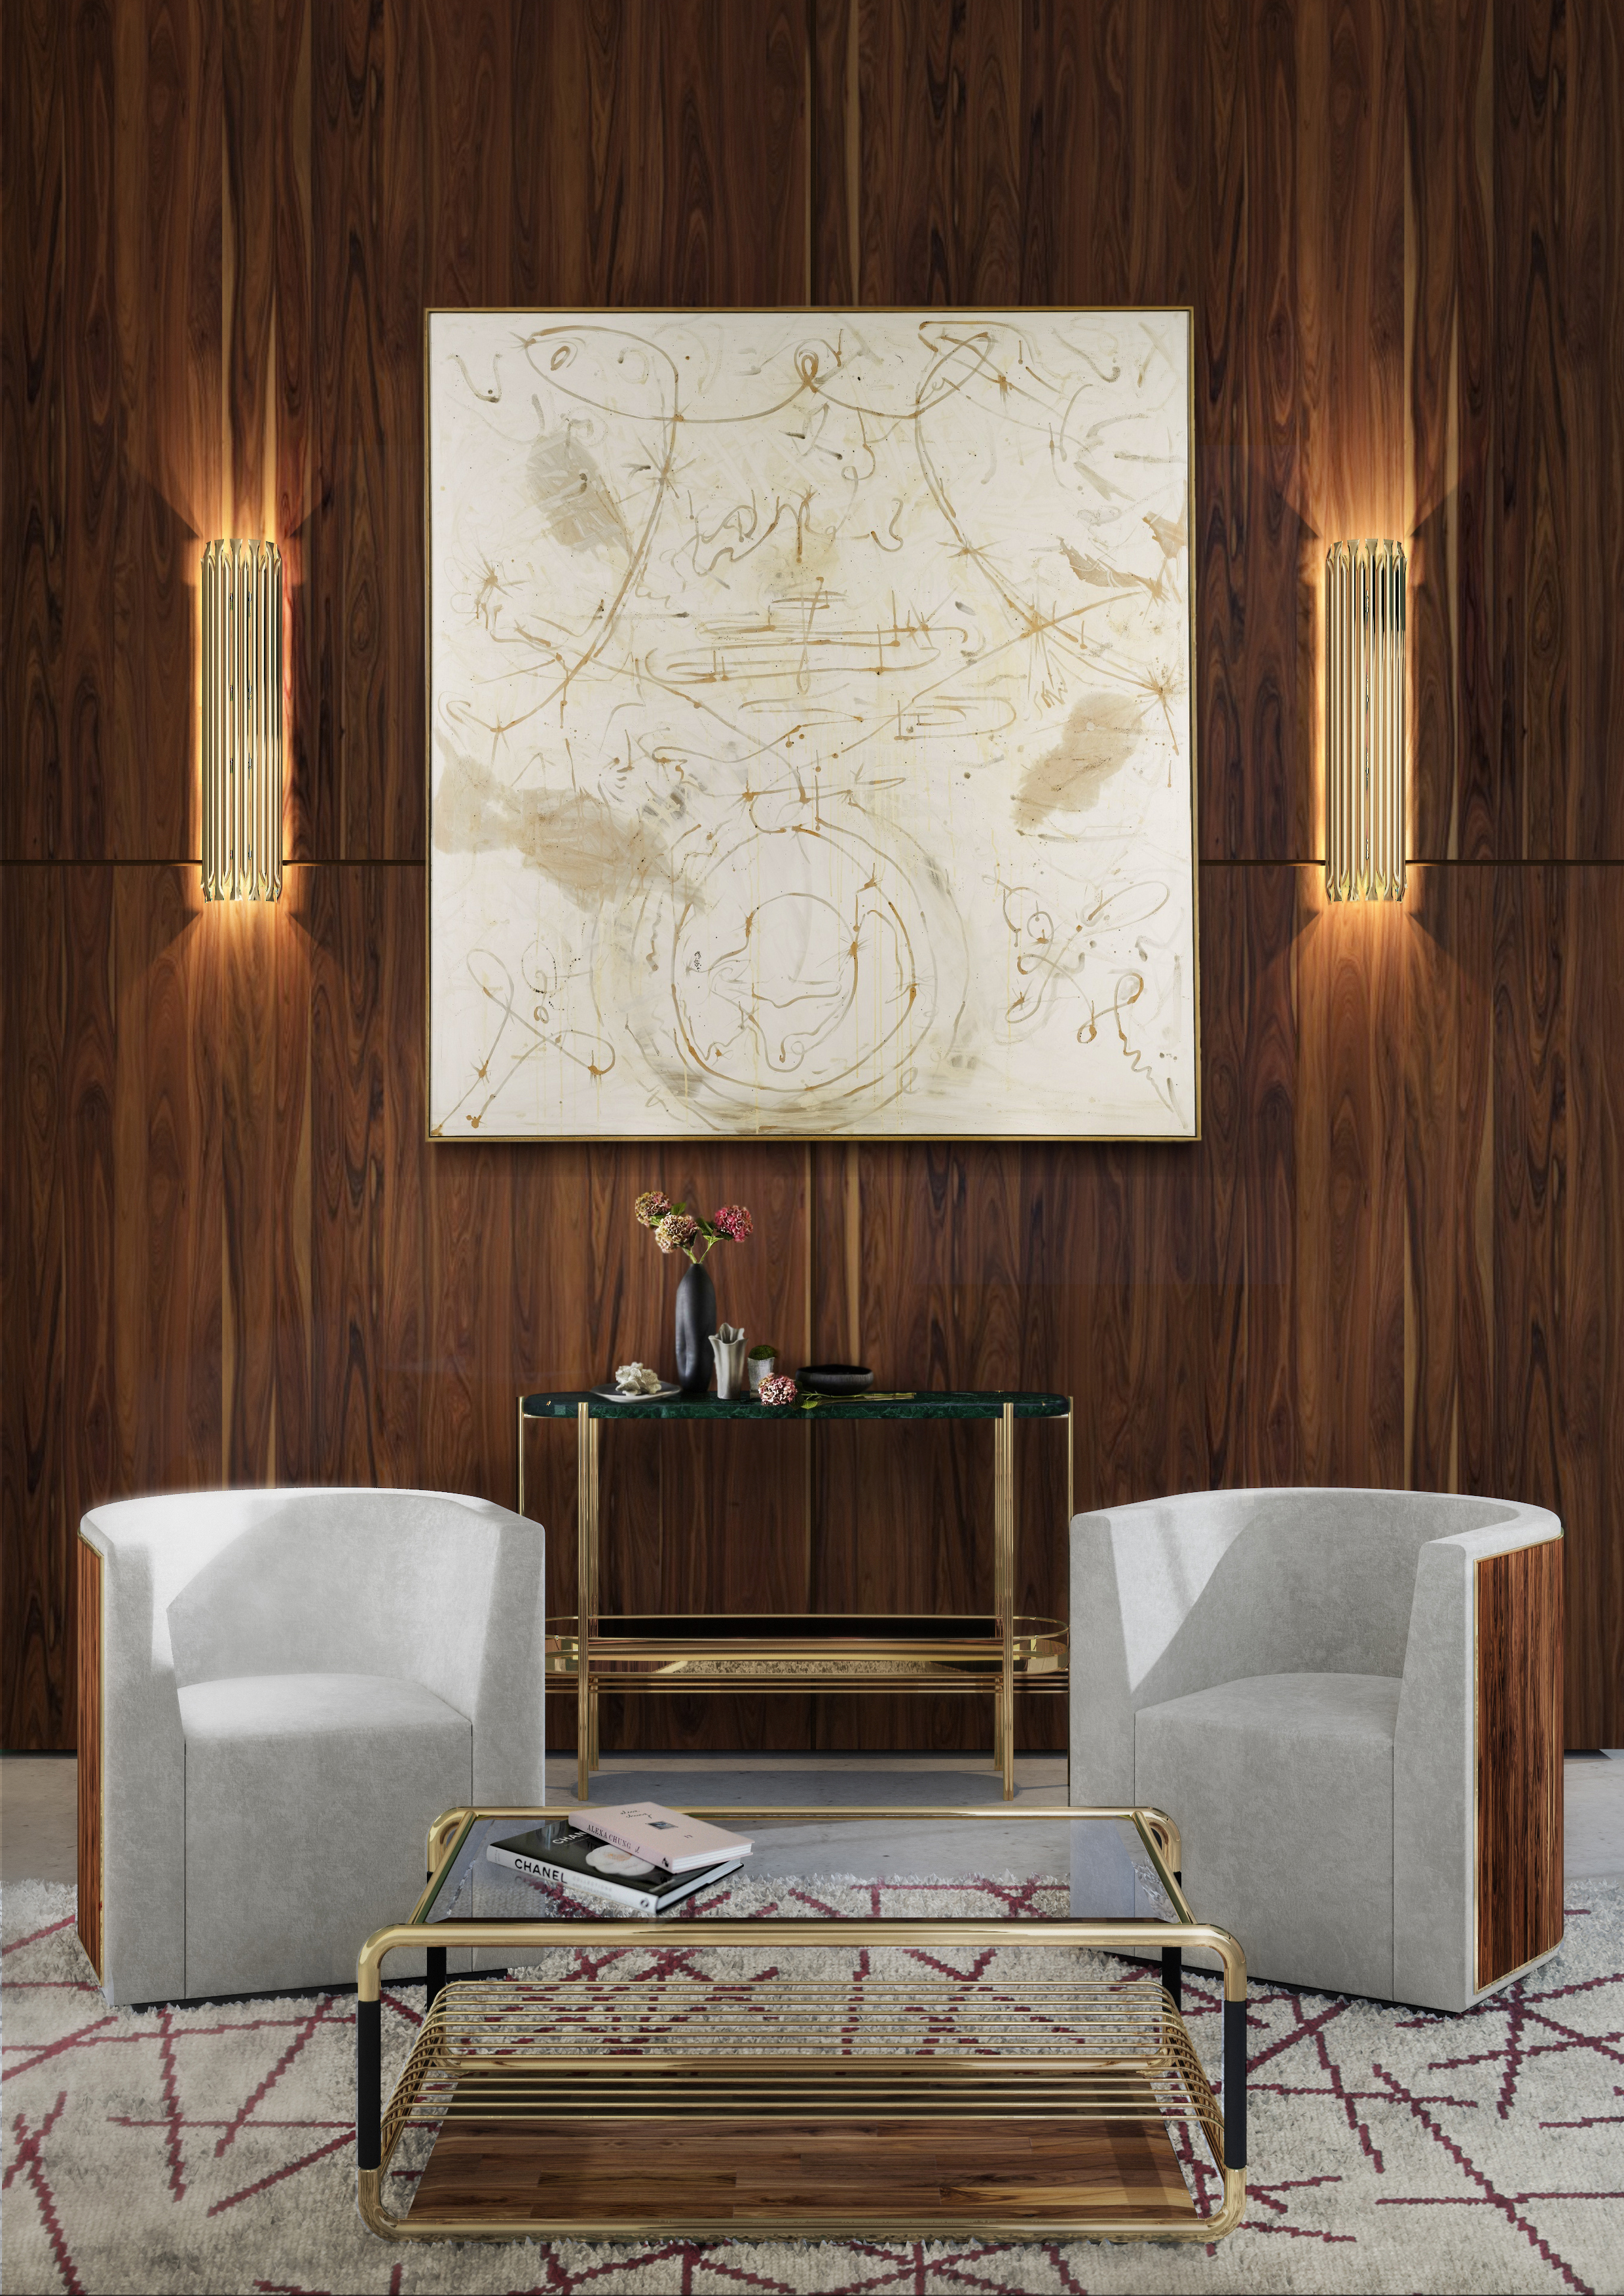 Living Room Ideas For a Luxurious Interior Design Project living room ideas Living Room Ideas For a Luxurious Interior Design Project Living Room Ideas For a Luxurious Interior Design Project 6